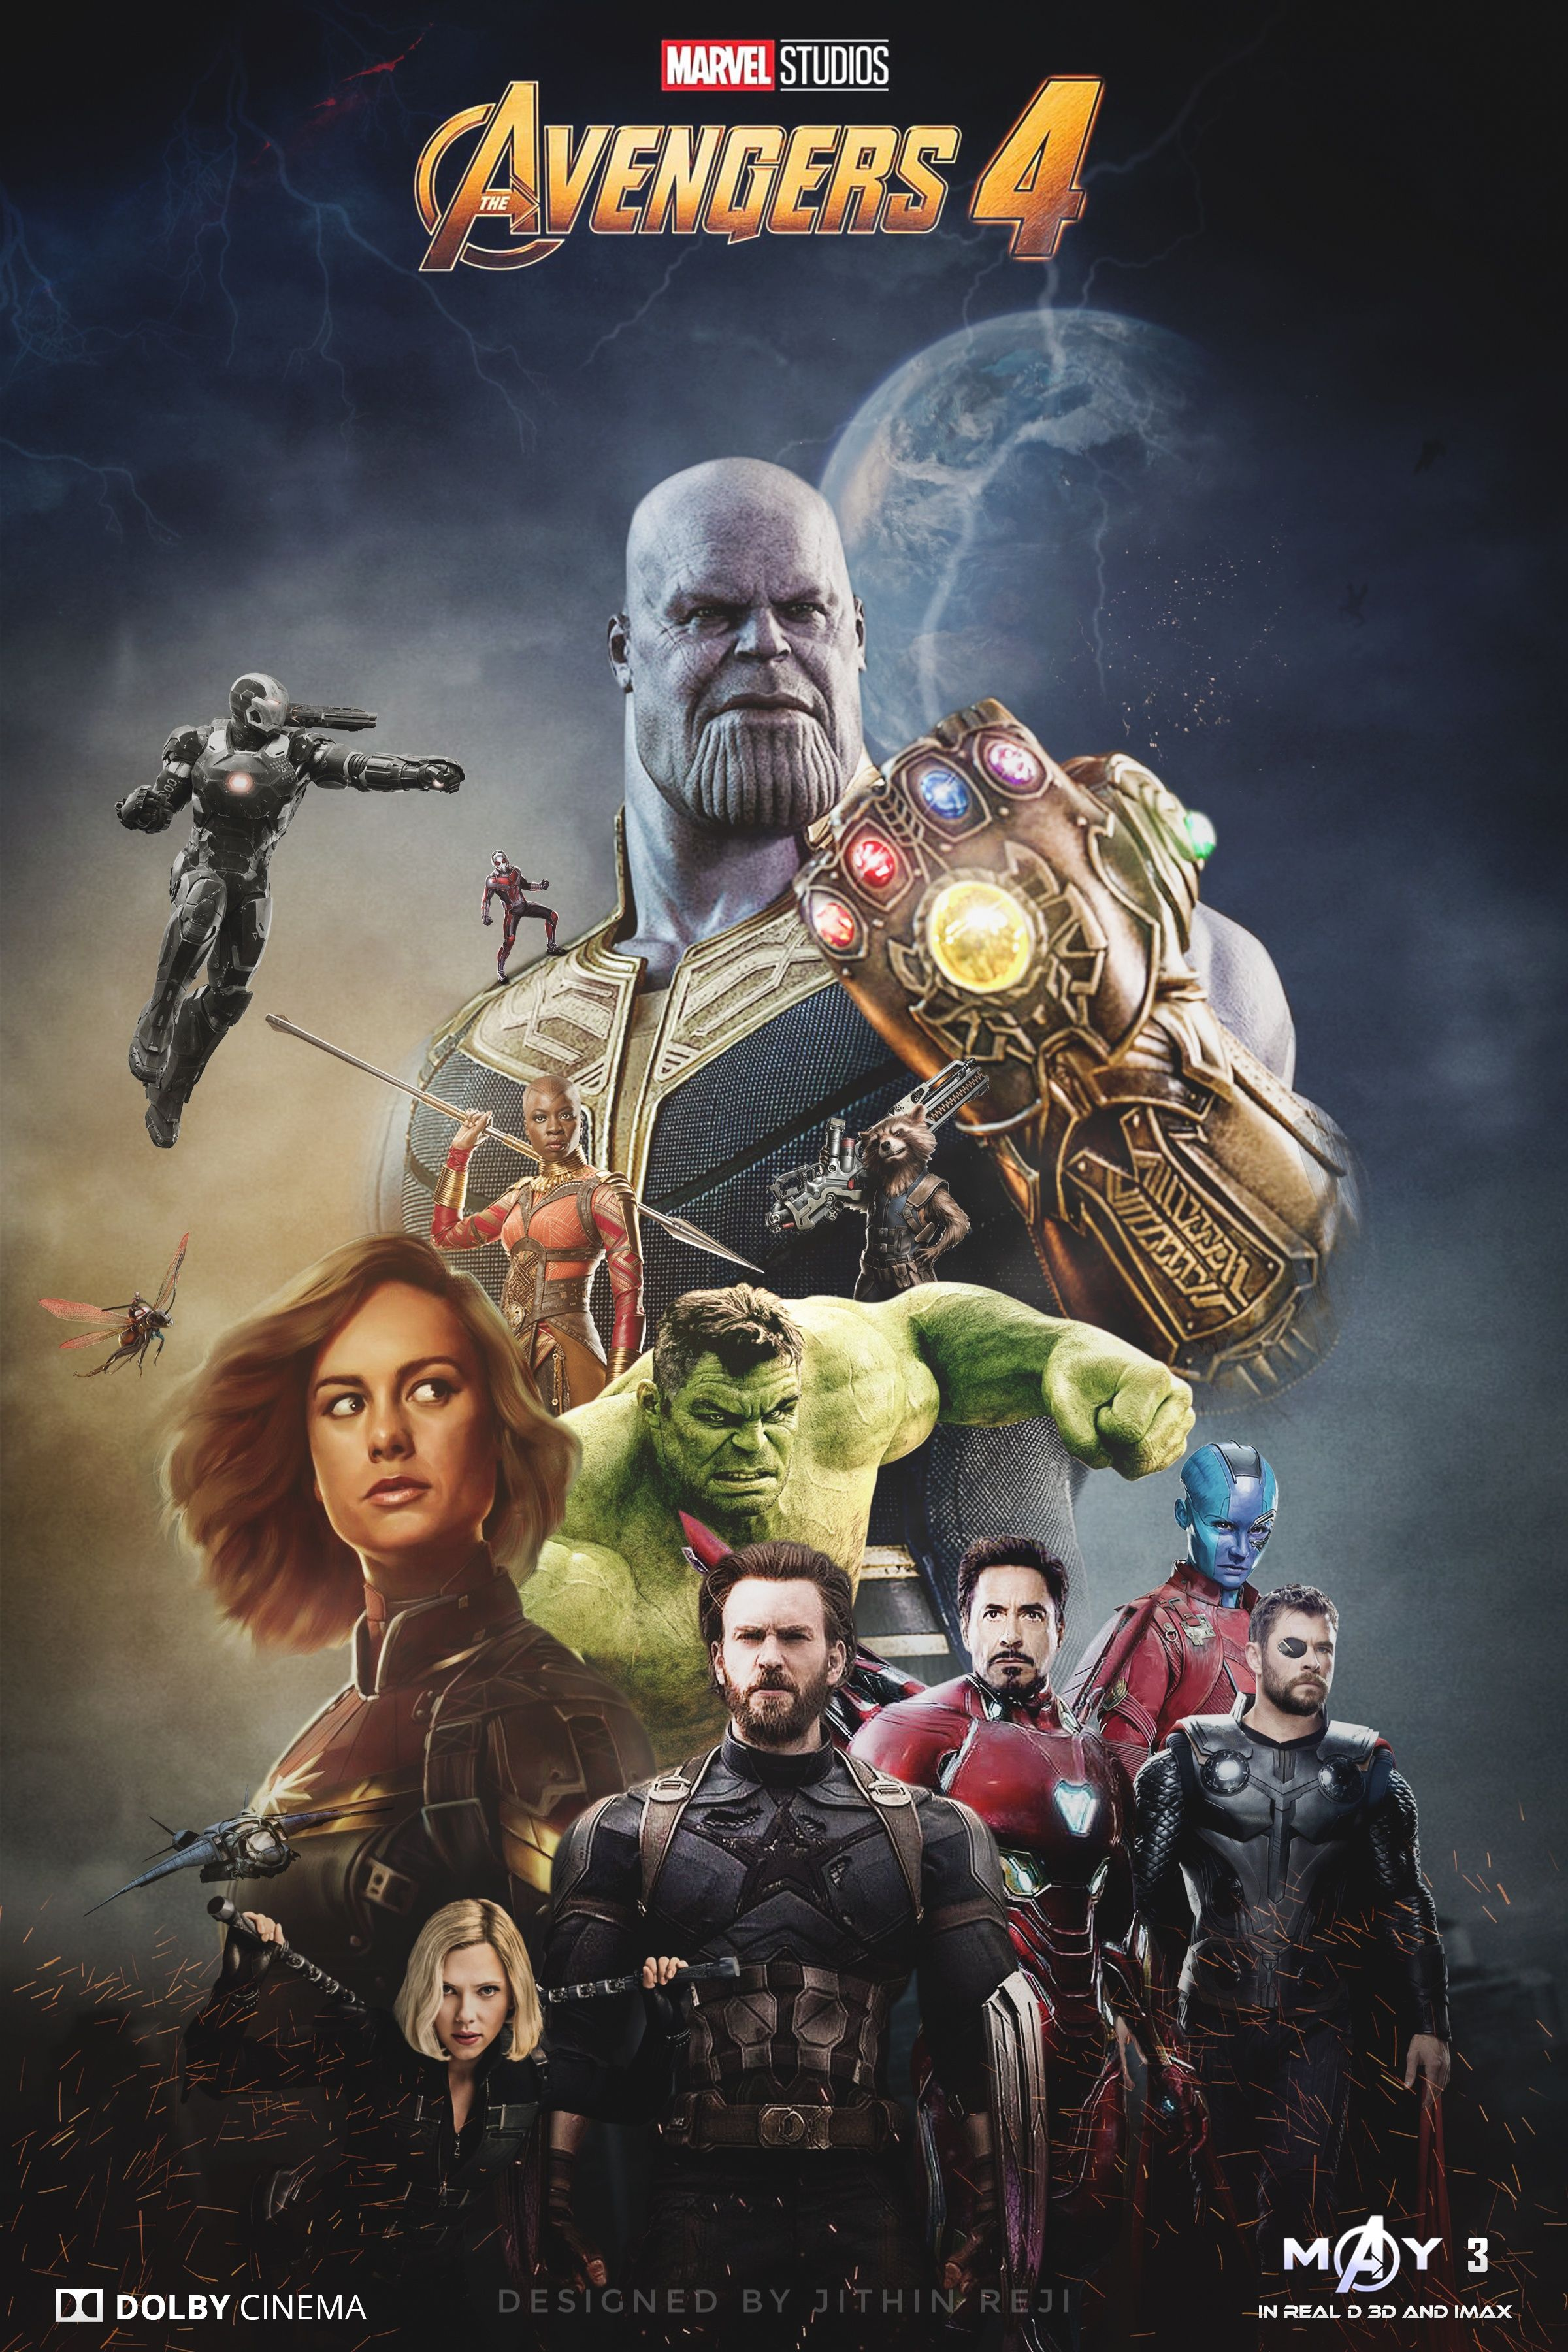 Avengers 4 Poster Avengers Poster Full Movies Download Full Movies